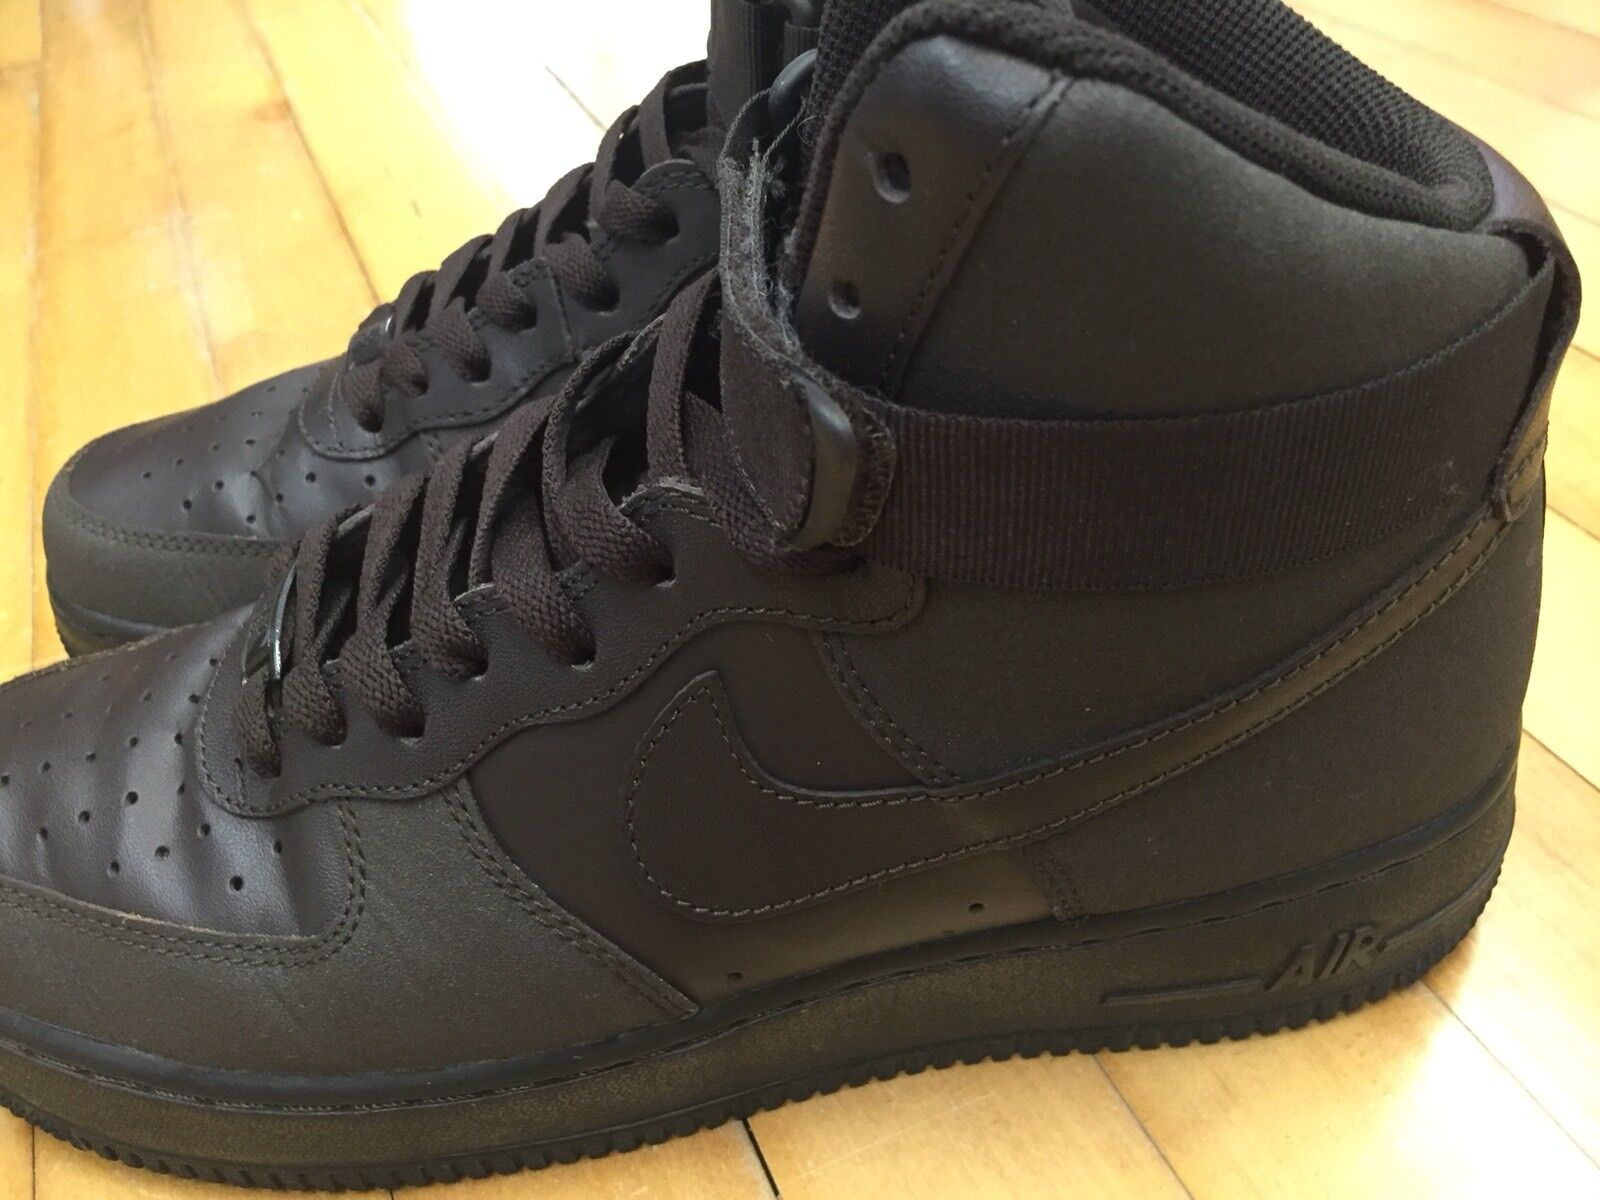 NIKE AIR FORCE ONE HIGH TOP SNEAKERS / MEN'S SHOES DARK BROWN SIZE 9.5